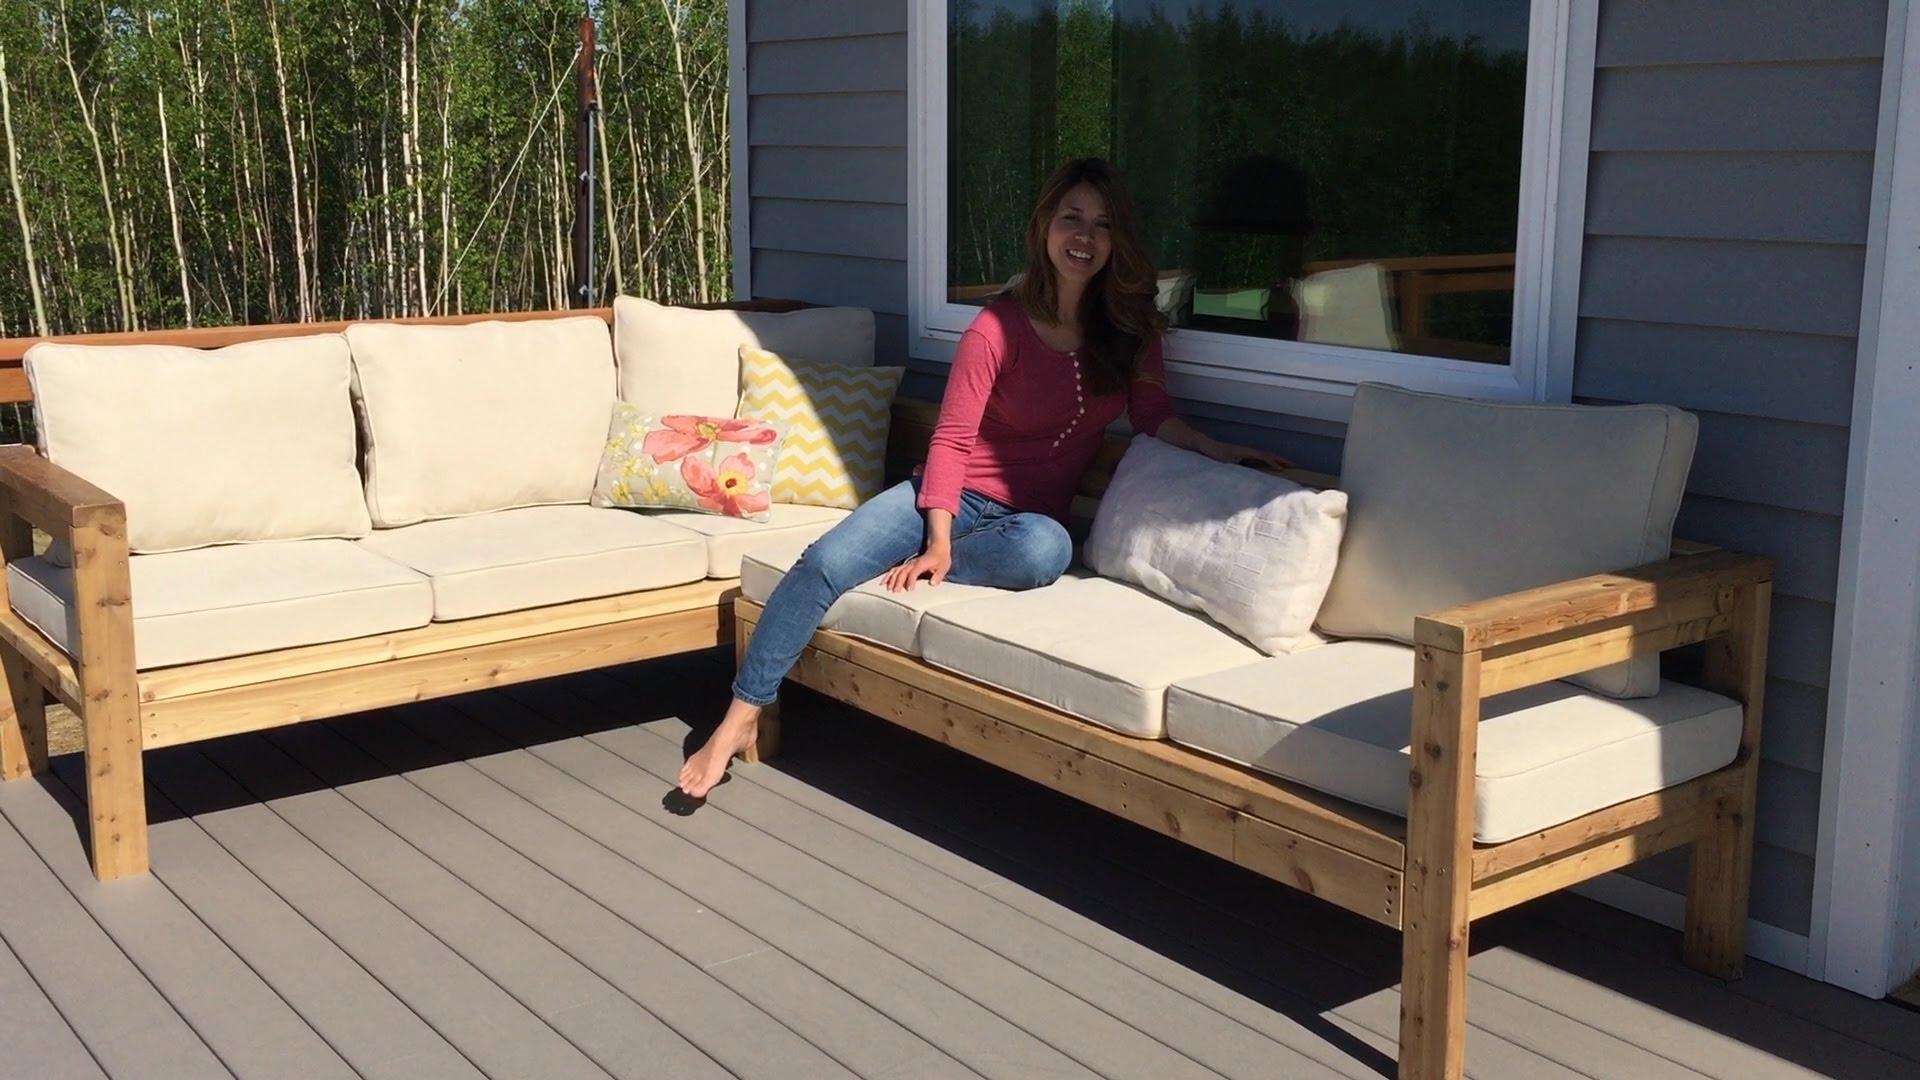 How To Build A 2X4 Outdoor Sectional Tutorial – Youtube Intended For Building A Sectional Sofa (View 6 of 15)